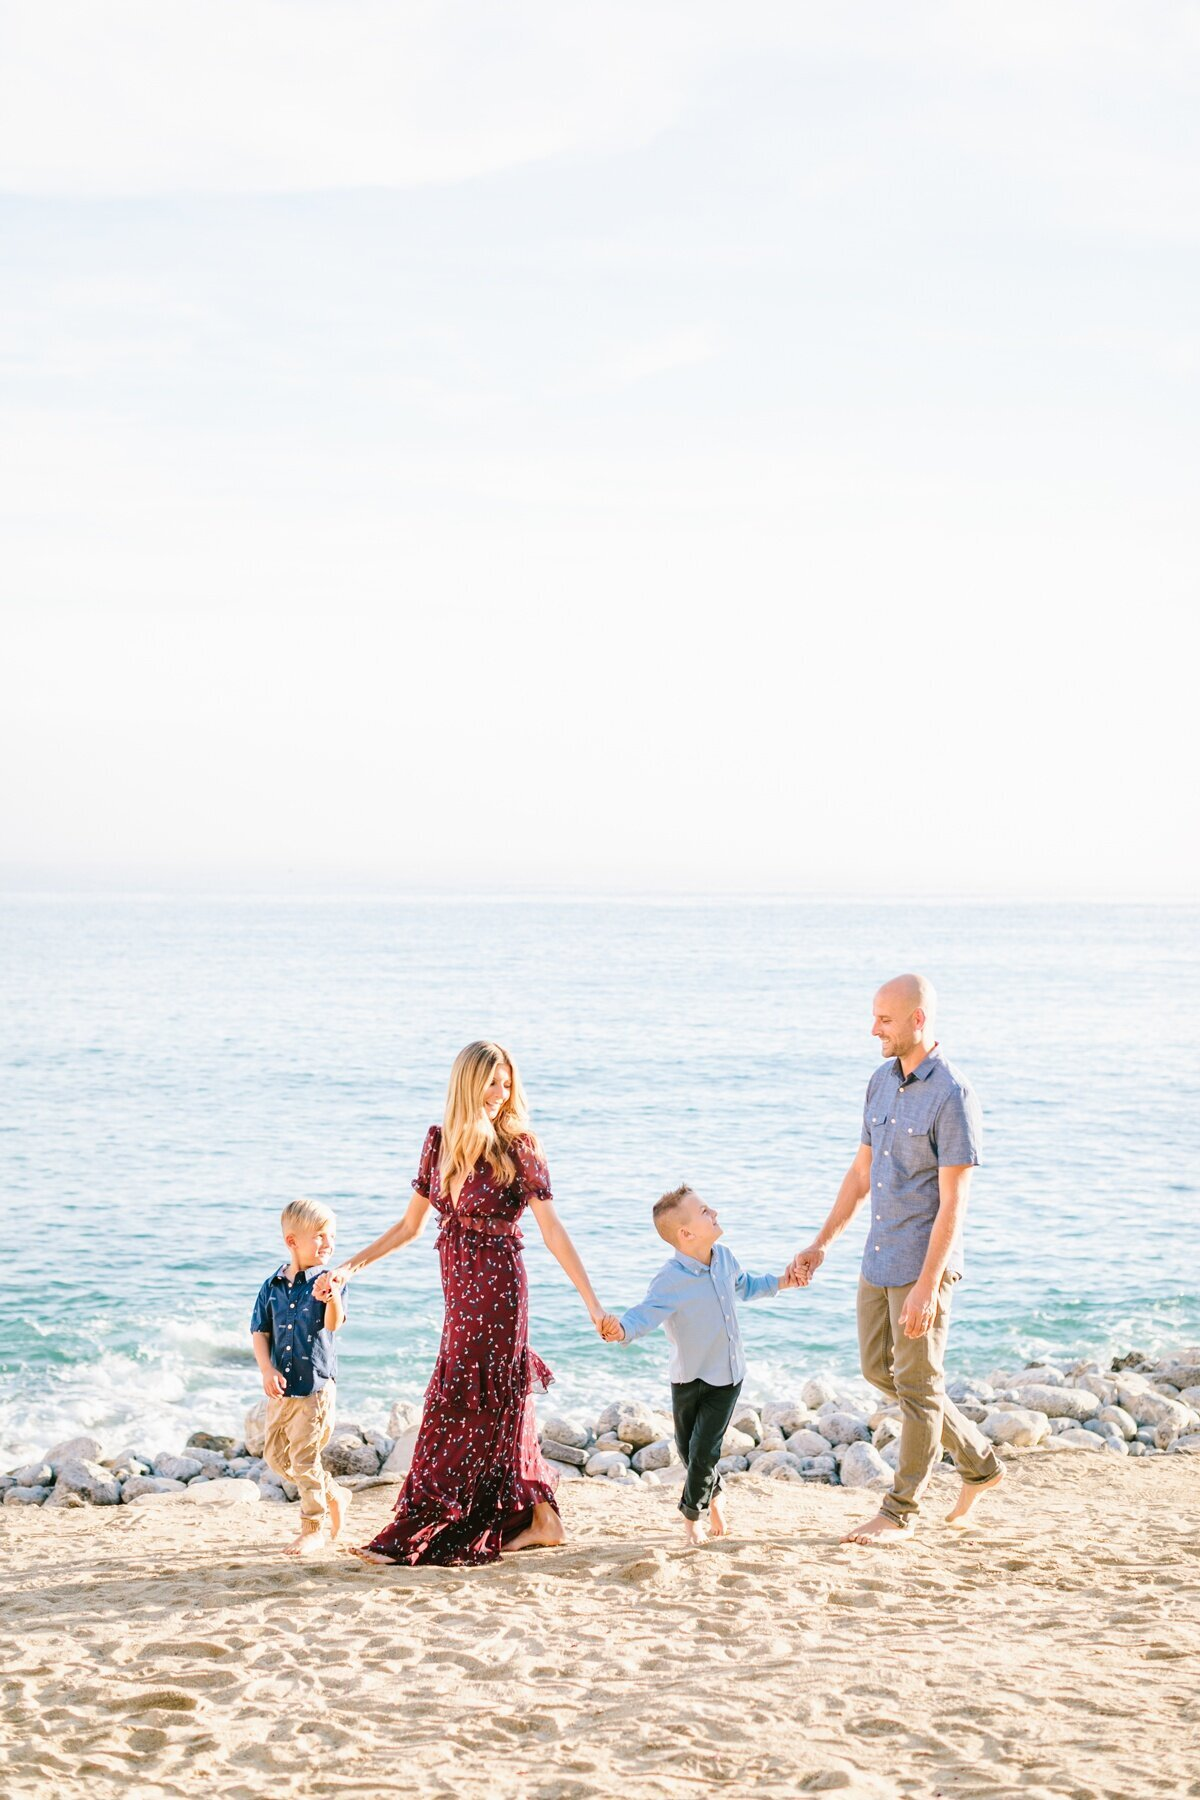 California Family Photography-Texas Family Photographer-Family Photos-Jodee Debes Photography-50